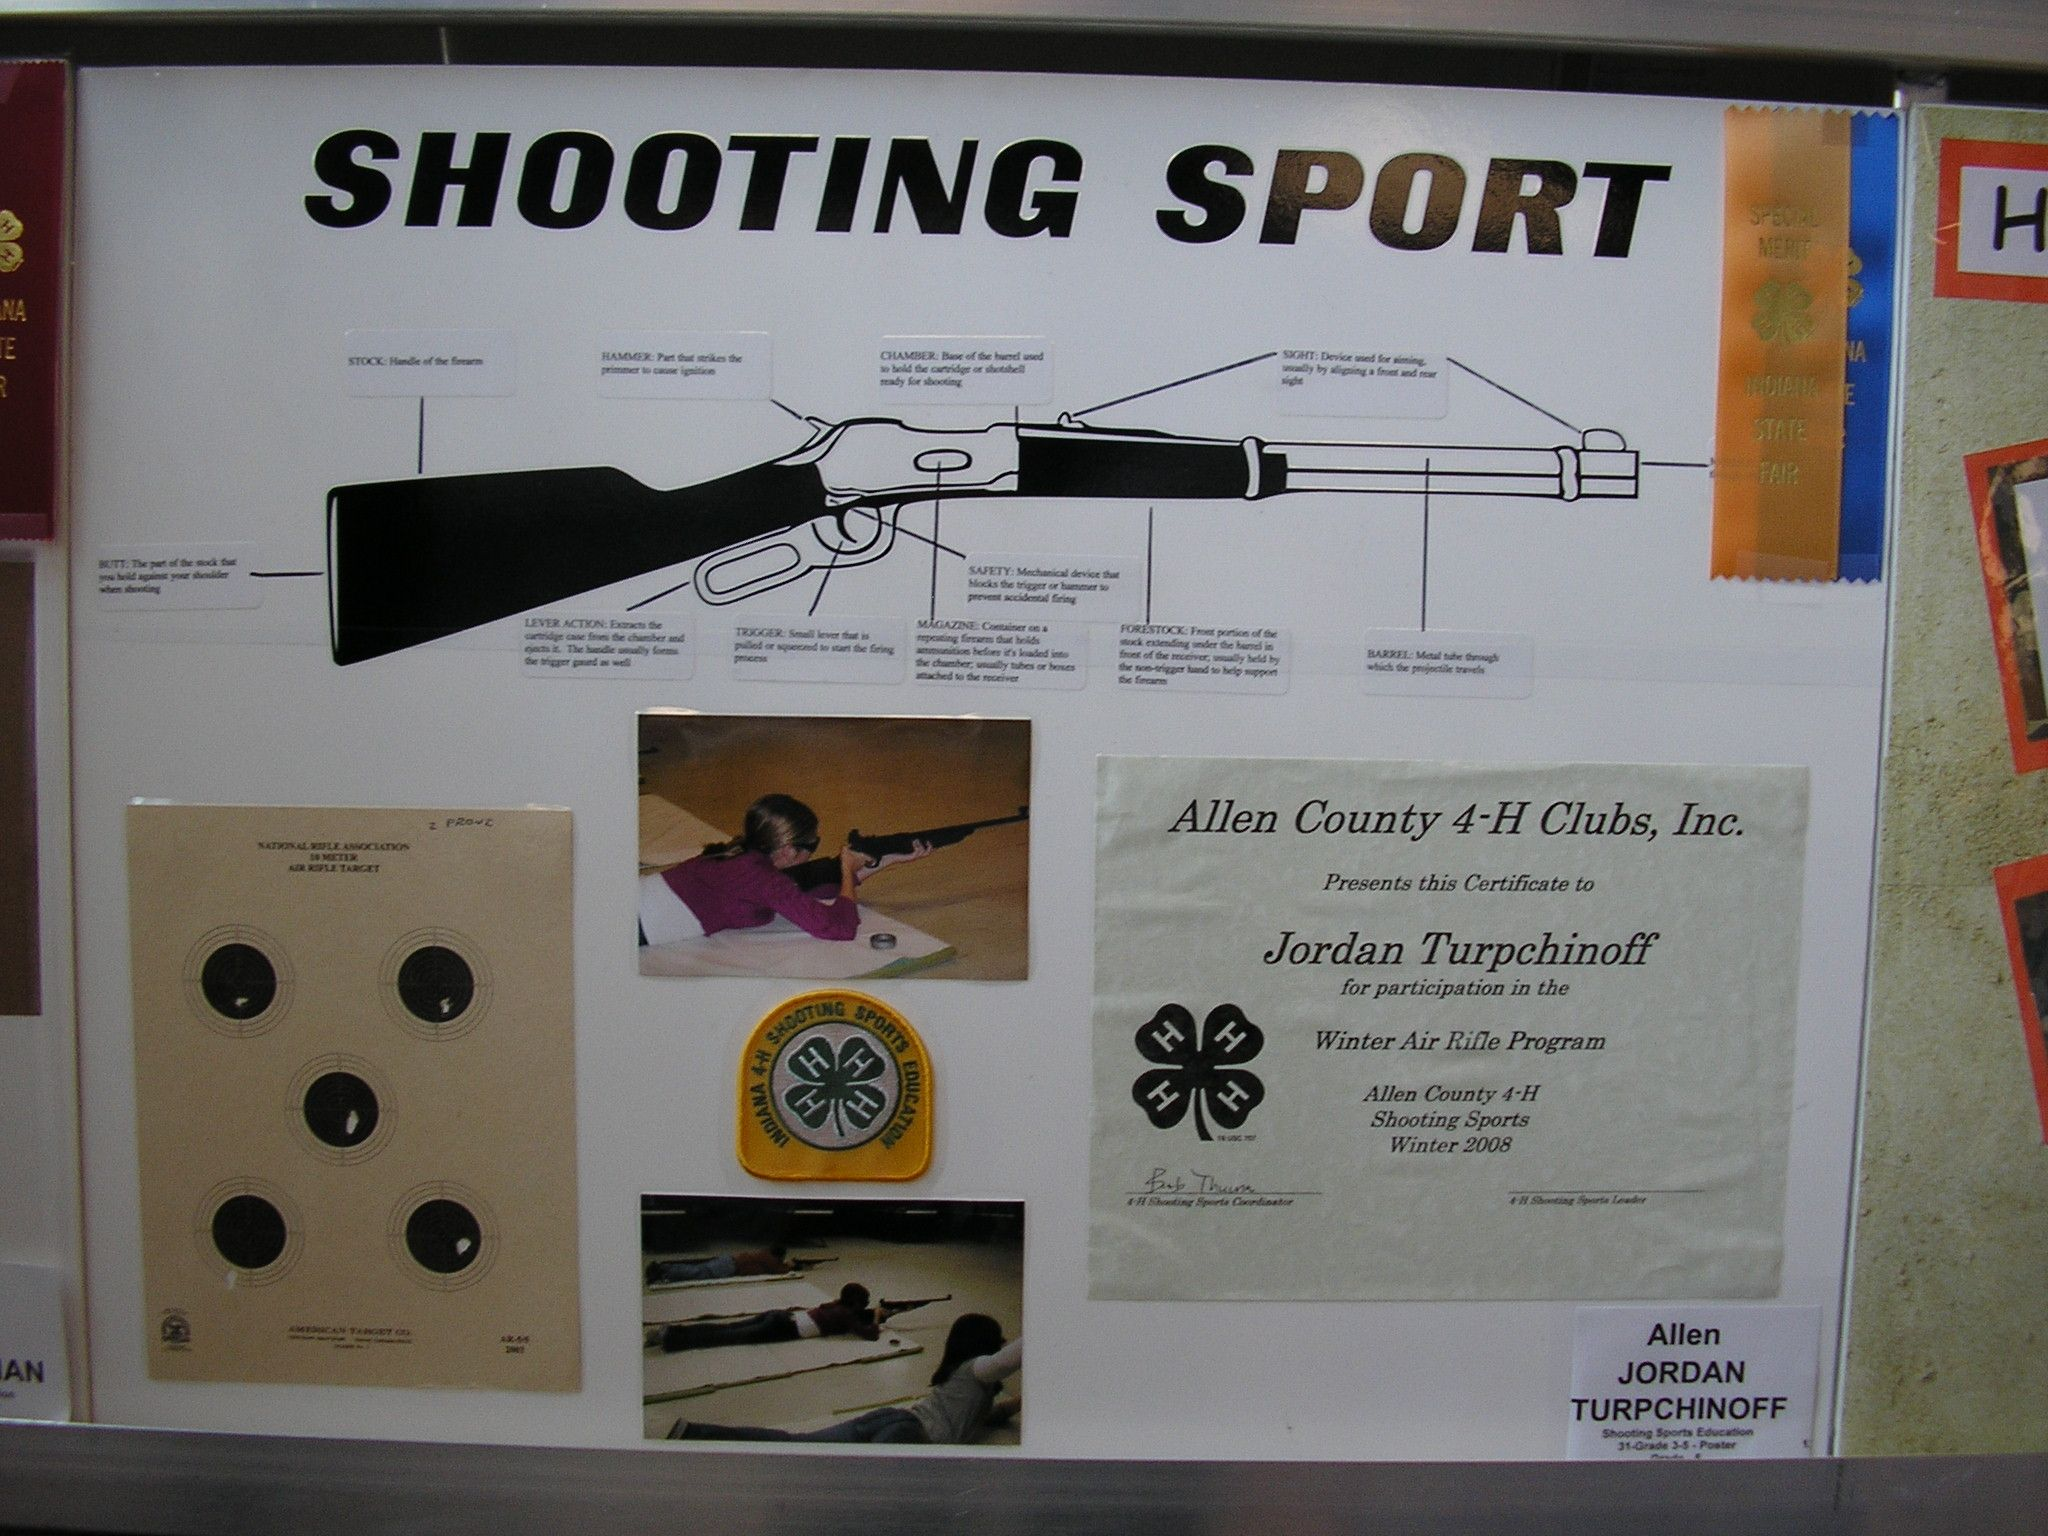 4 h poster designs - Shooting Sports Projects Ideas Bing Images